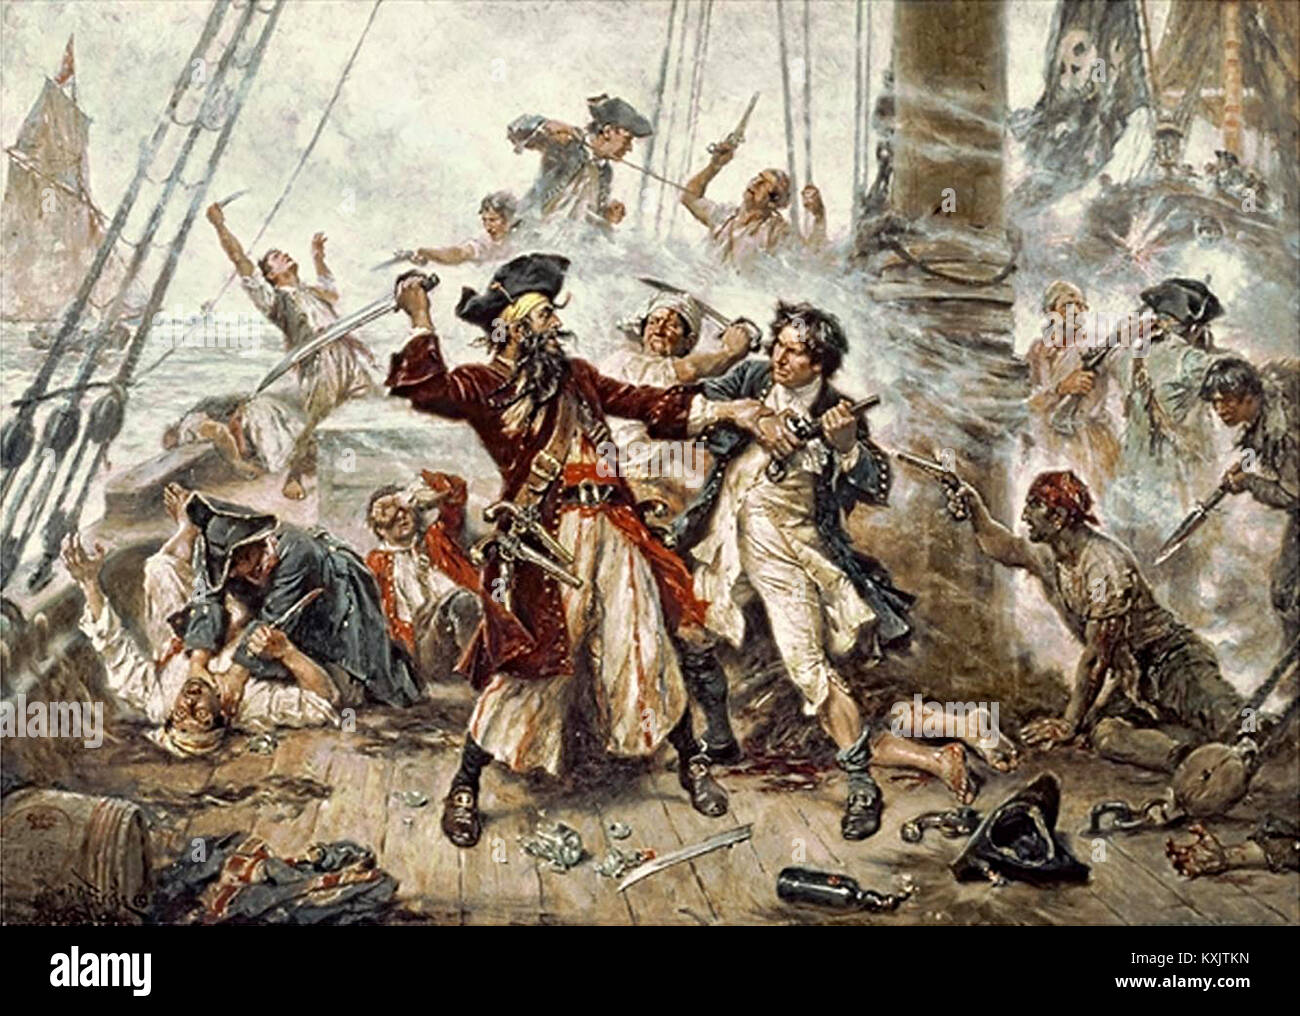 Capture of the Pirate, Blackbeard, 1718 - Stock Image